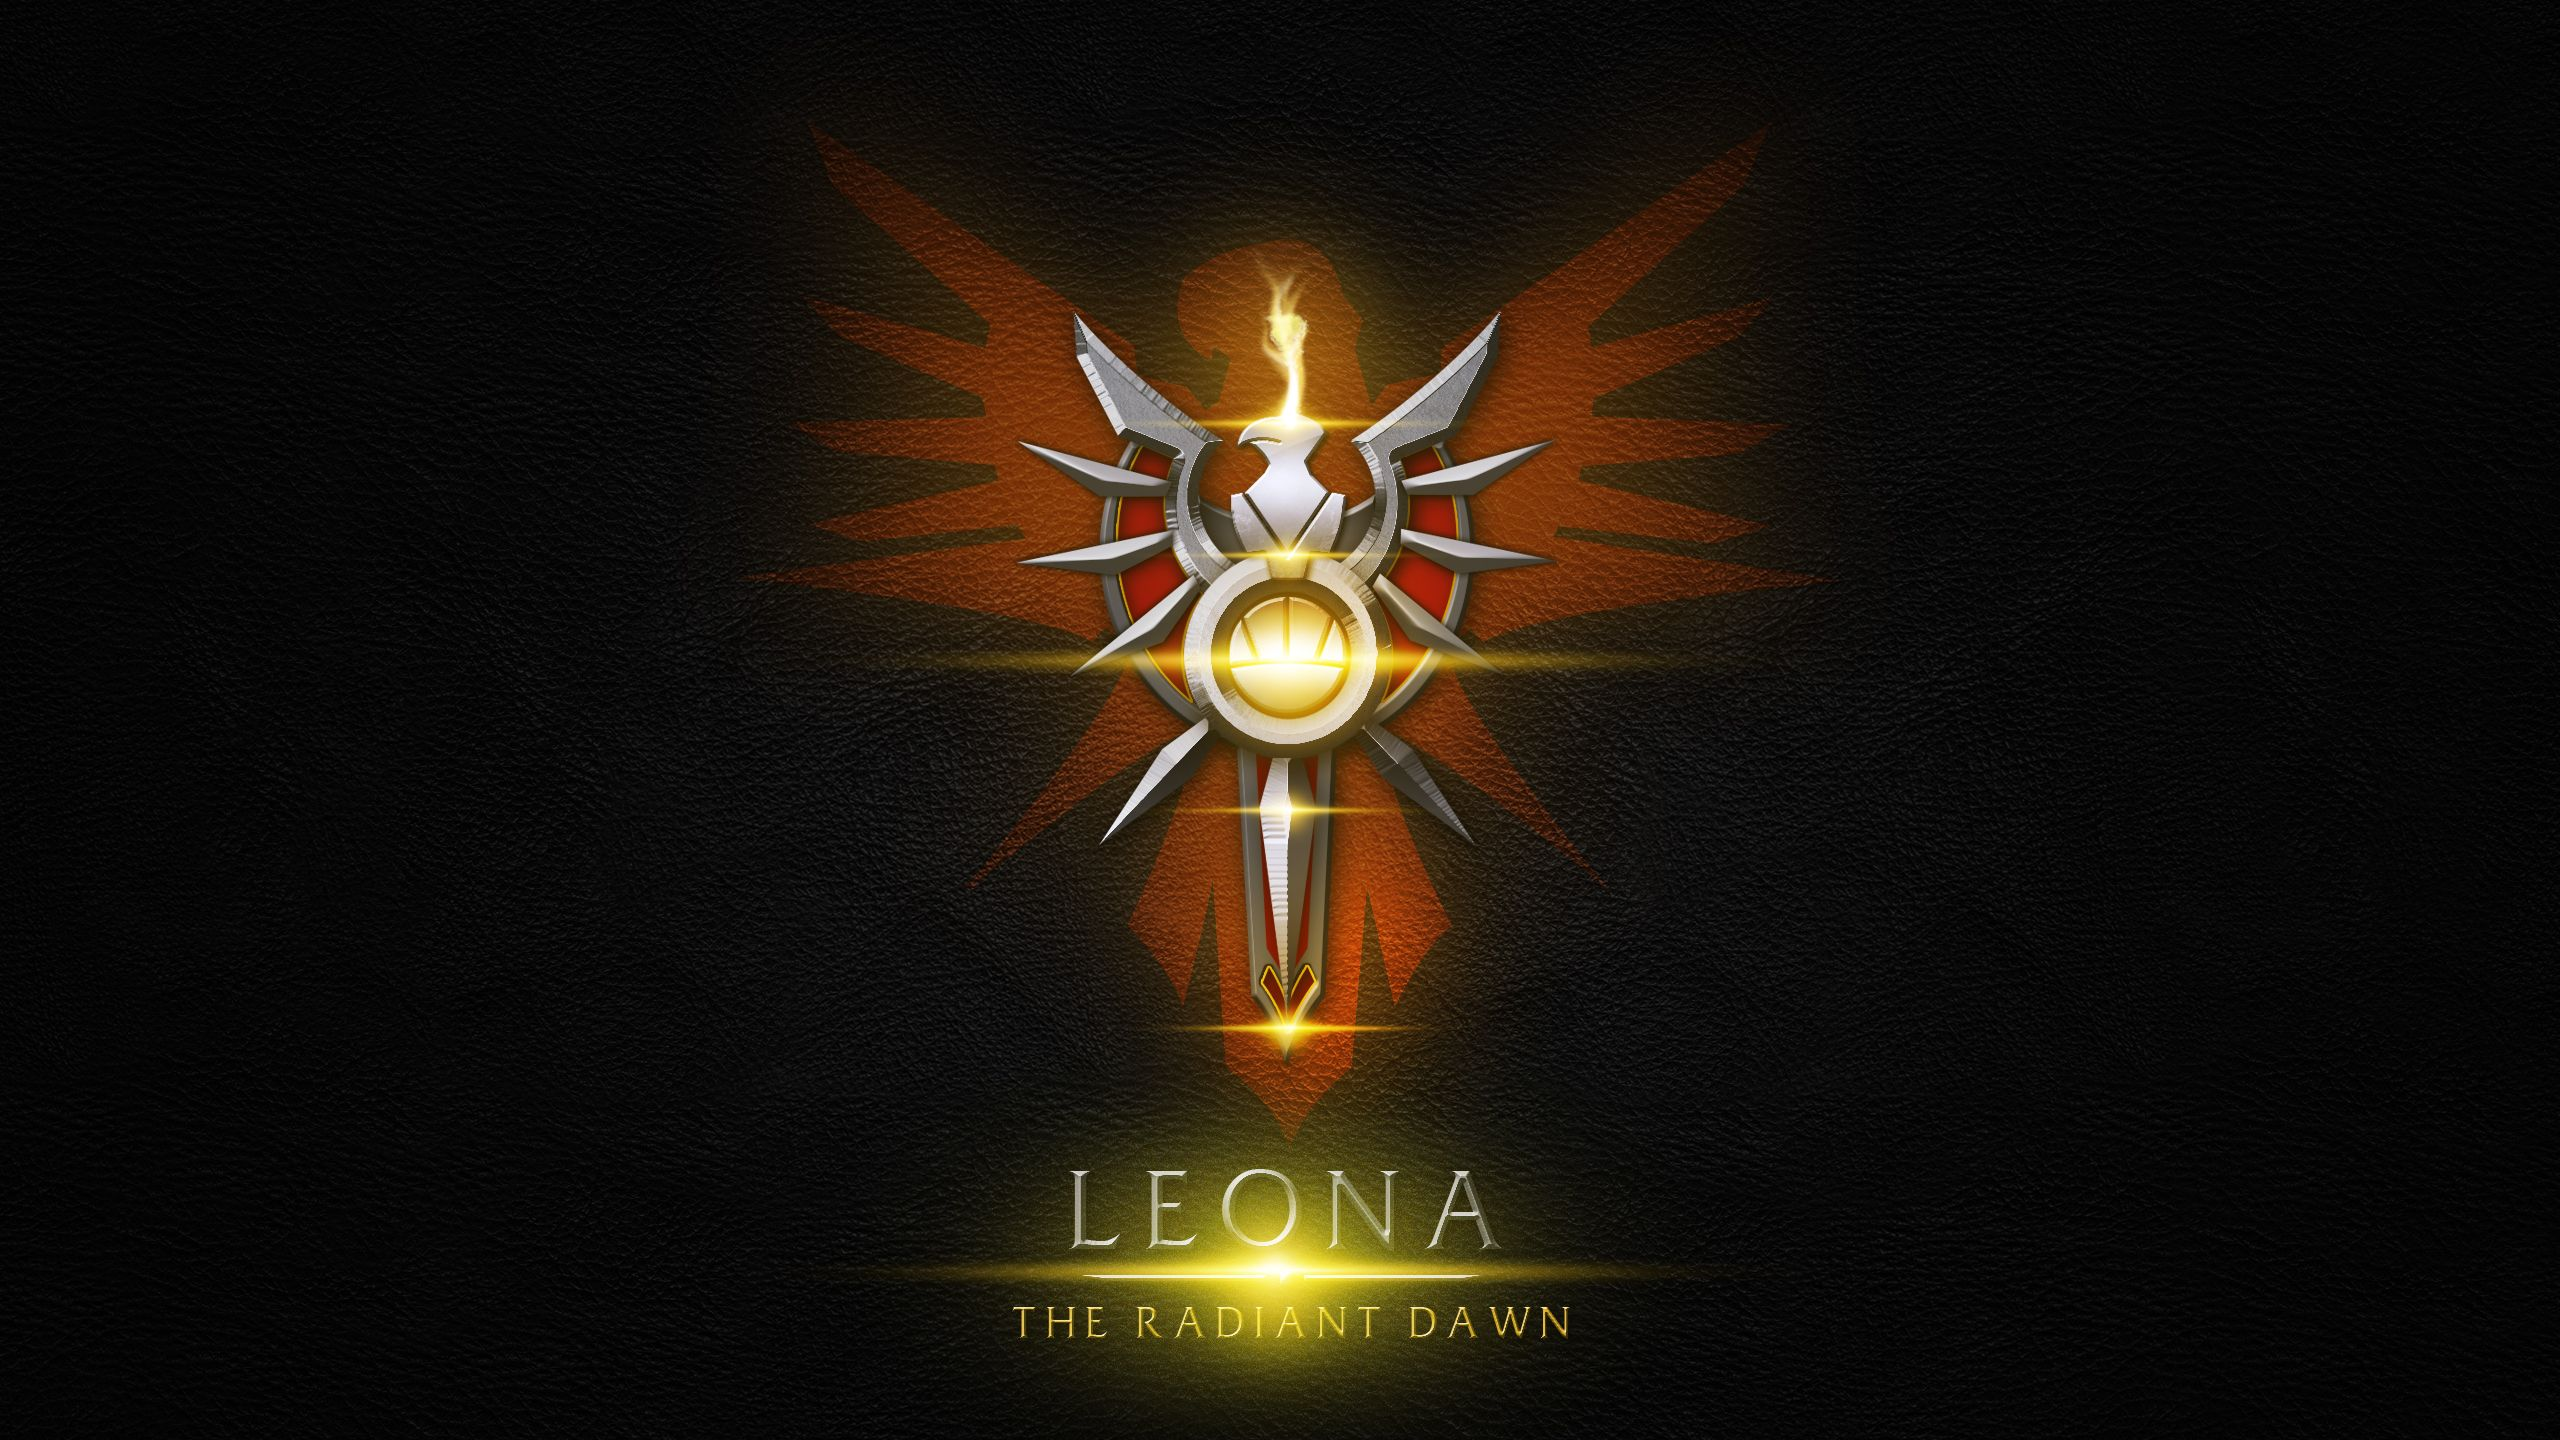 Leona Lol S4 Etc Games Stuff Pinterest League Of Legends